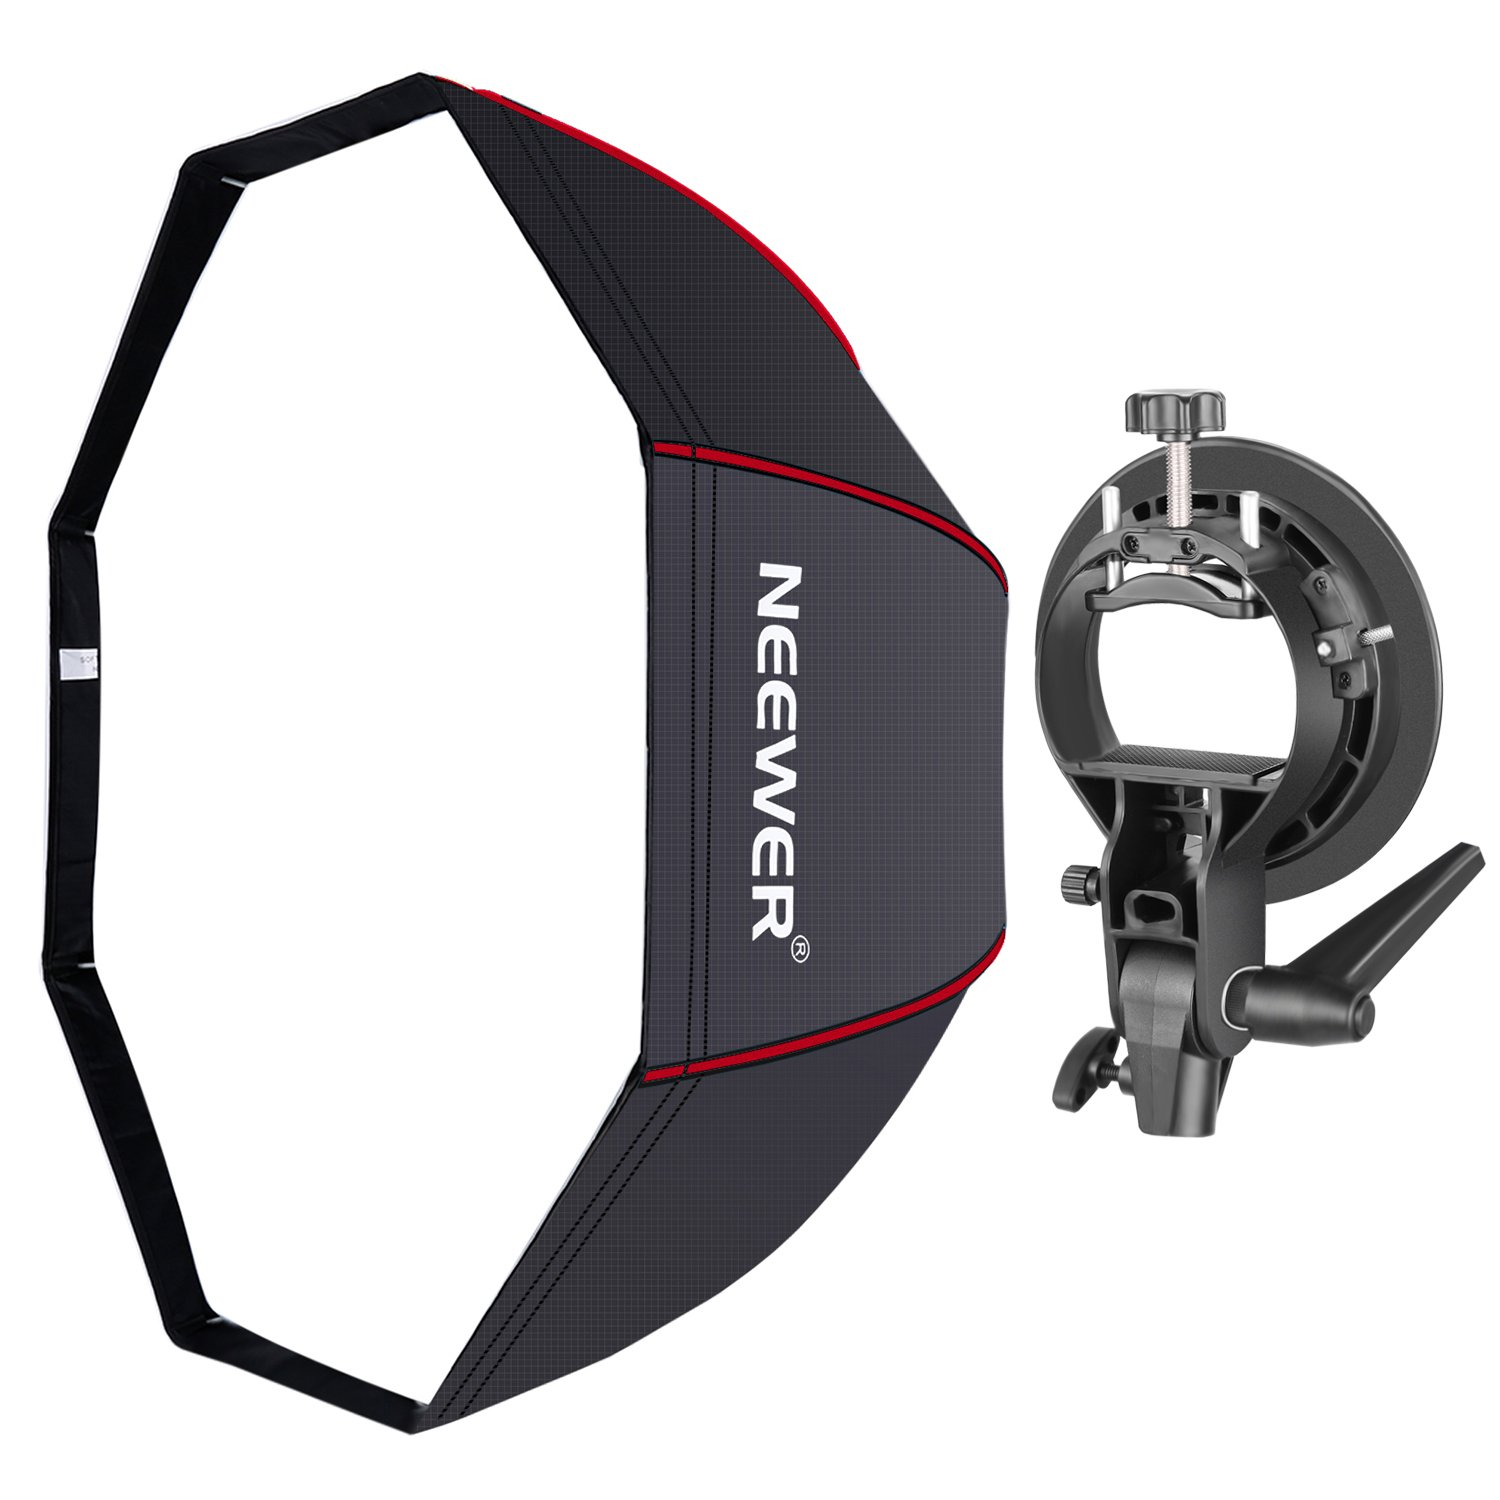 Neewer 48 Inches/120 Centimeters Octagonal Softbox With Red